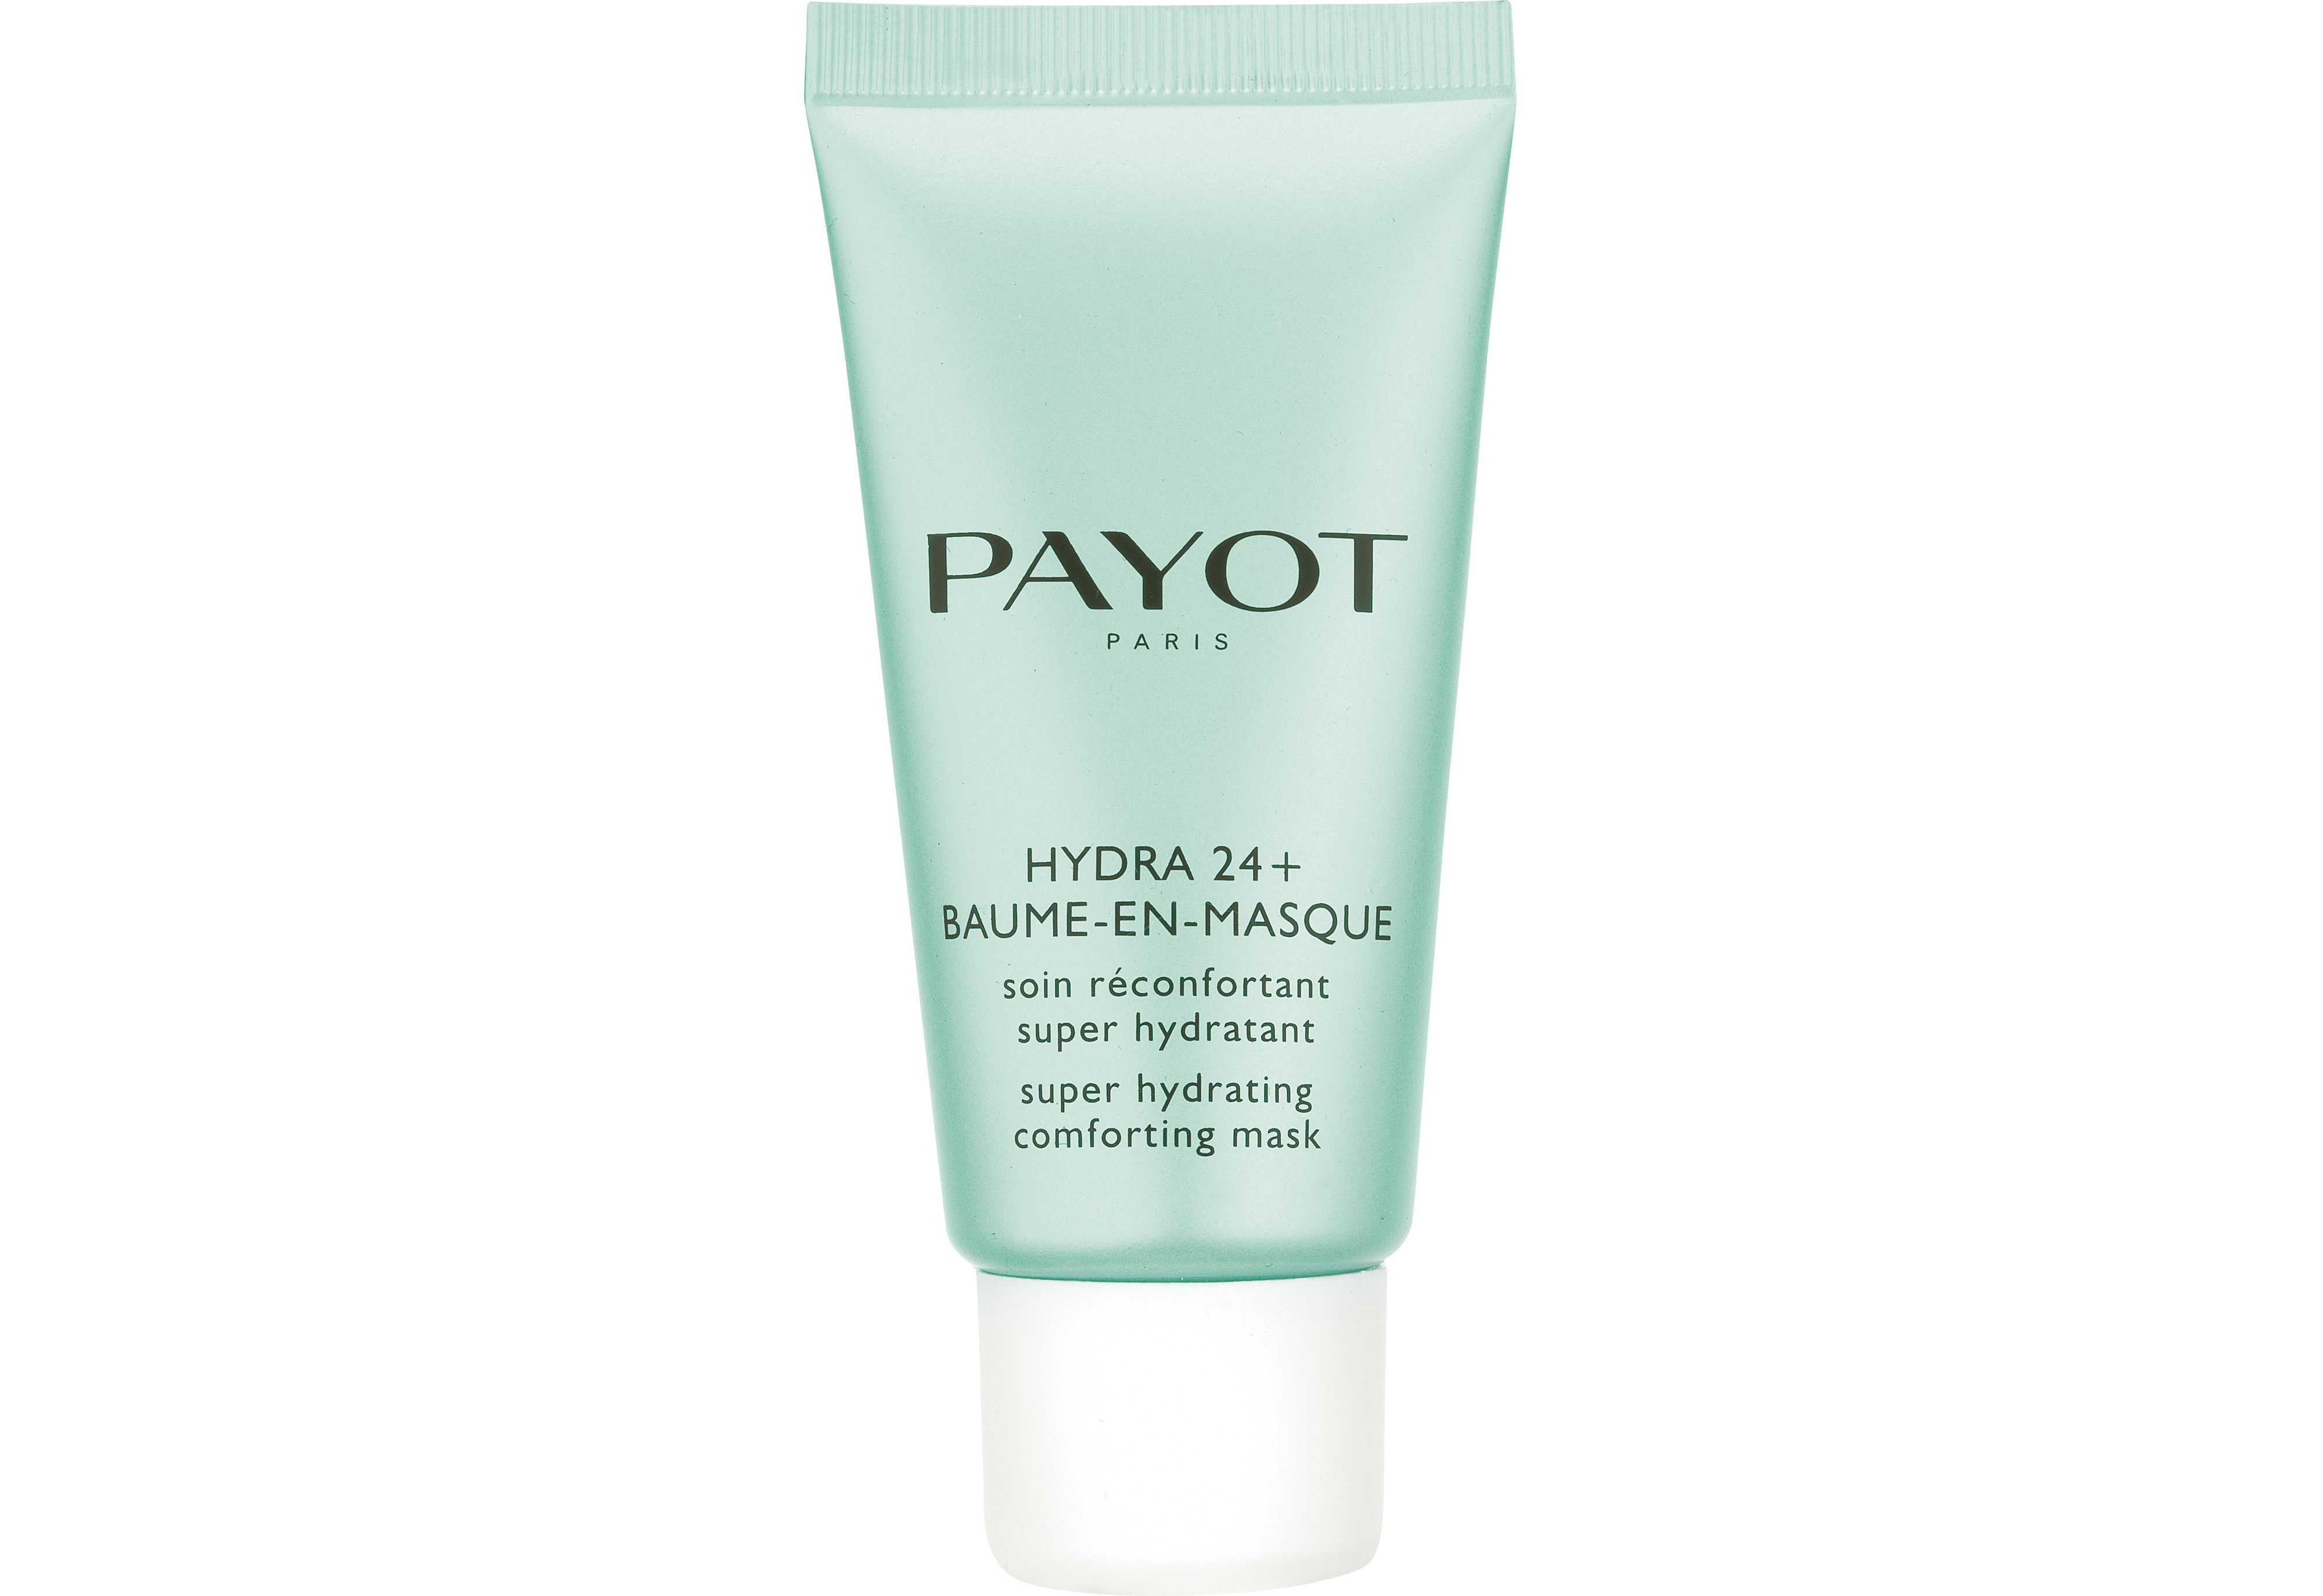 Payot Hydra 24+ Baume-En-Masque,